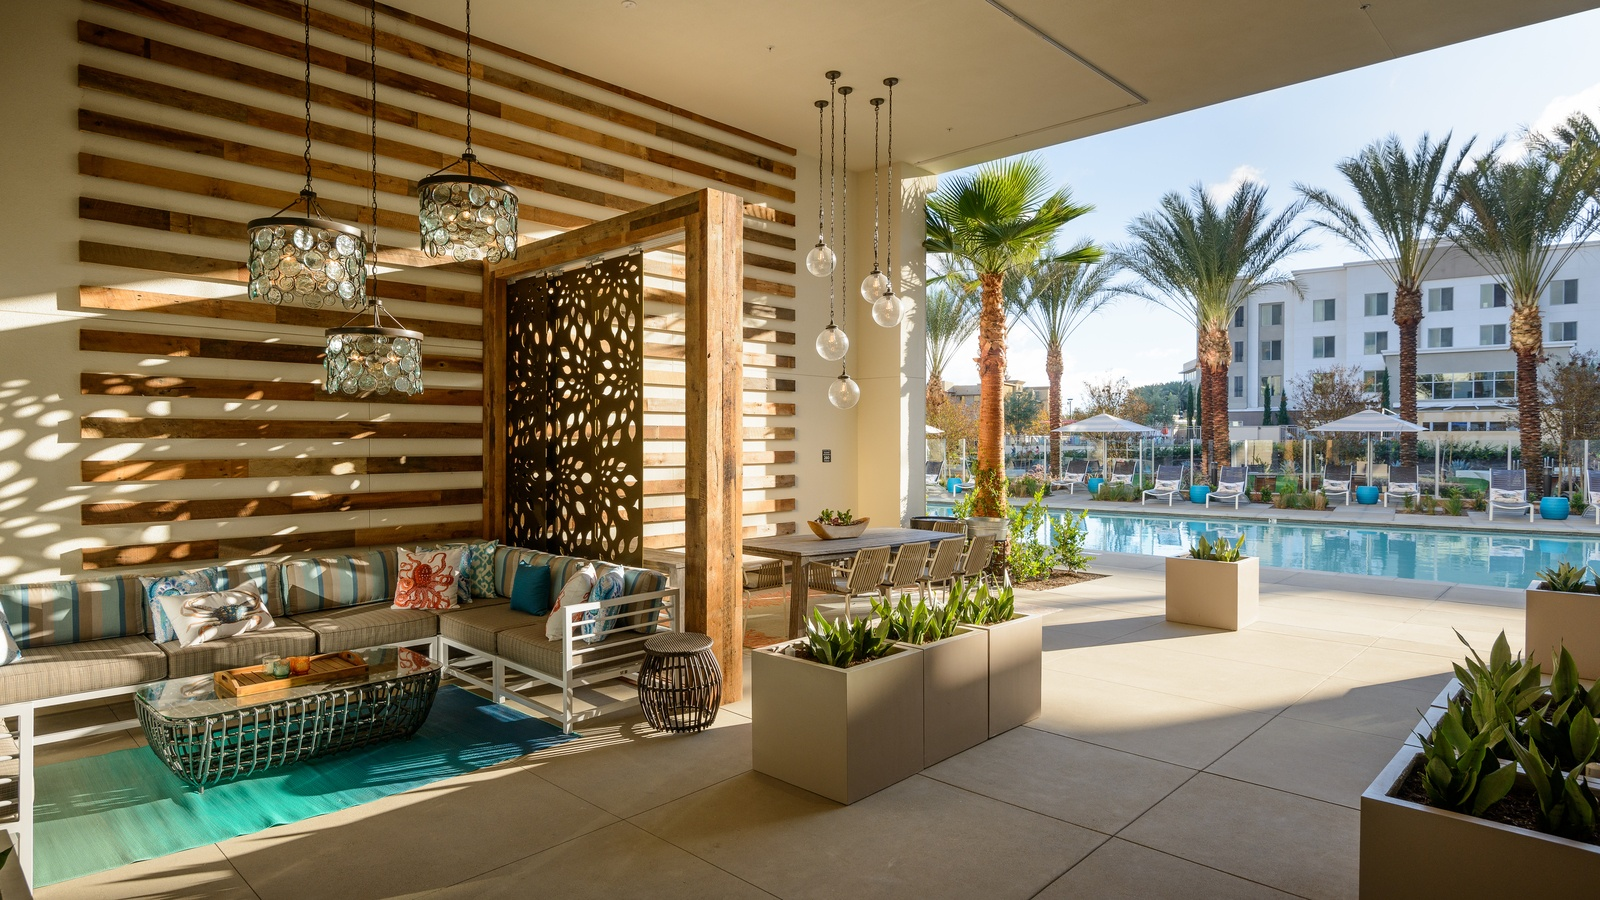 Multifamily Design Strategies Hoteliers Can Apply to Boost Curb Appeal